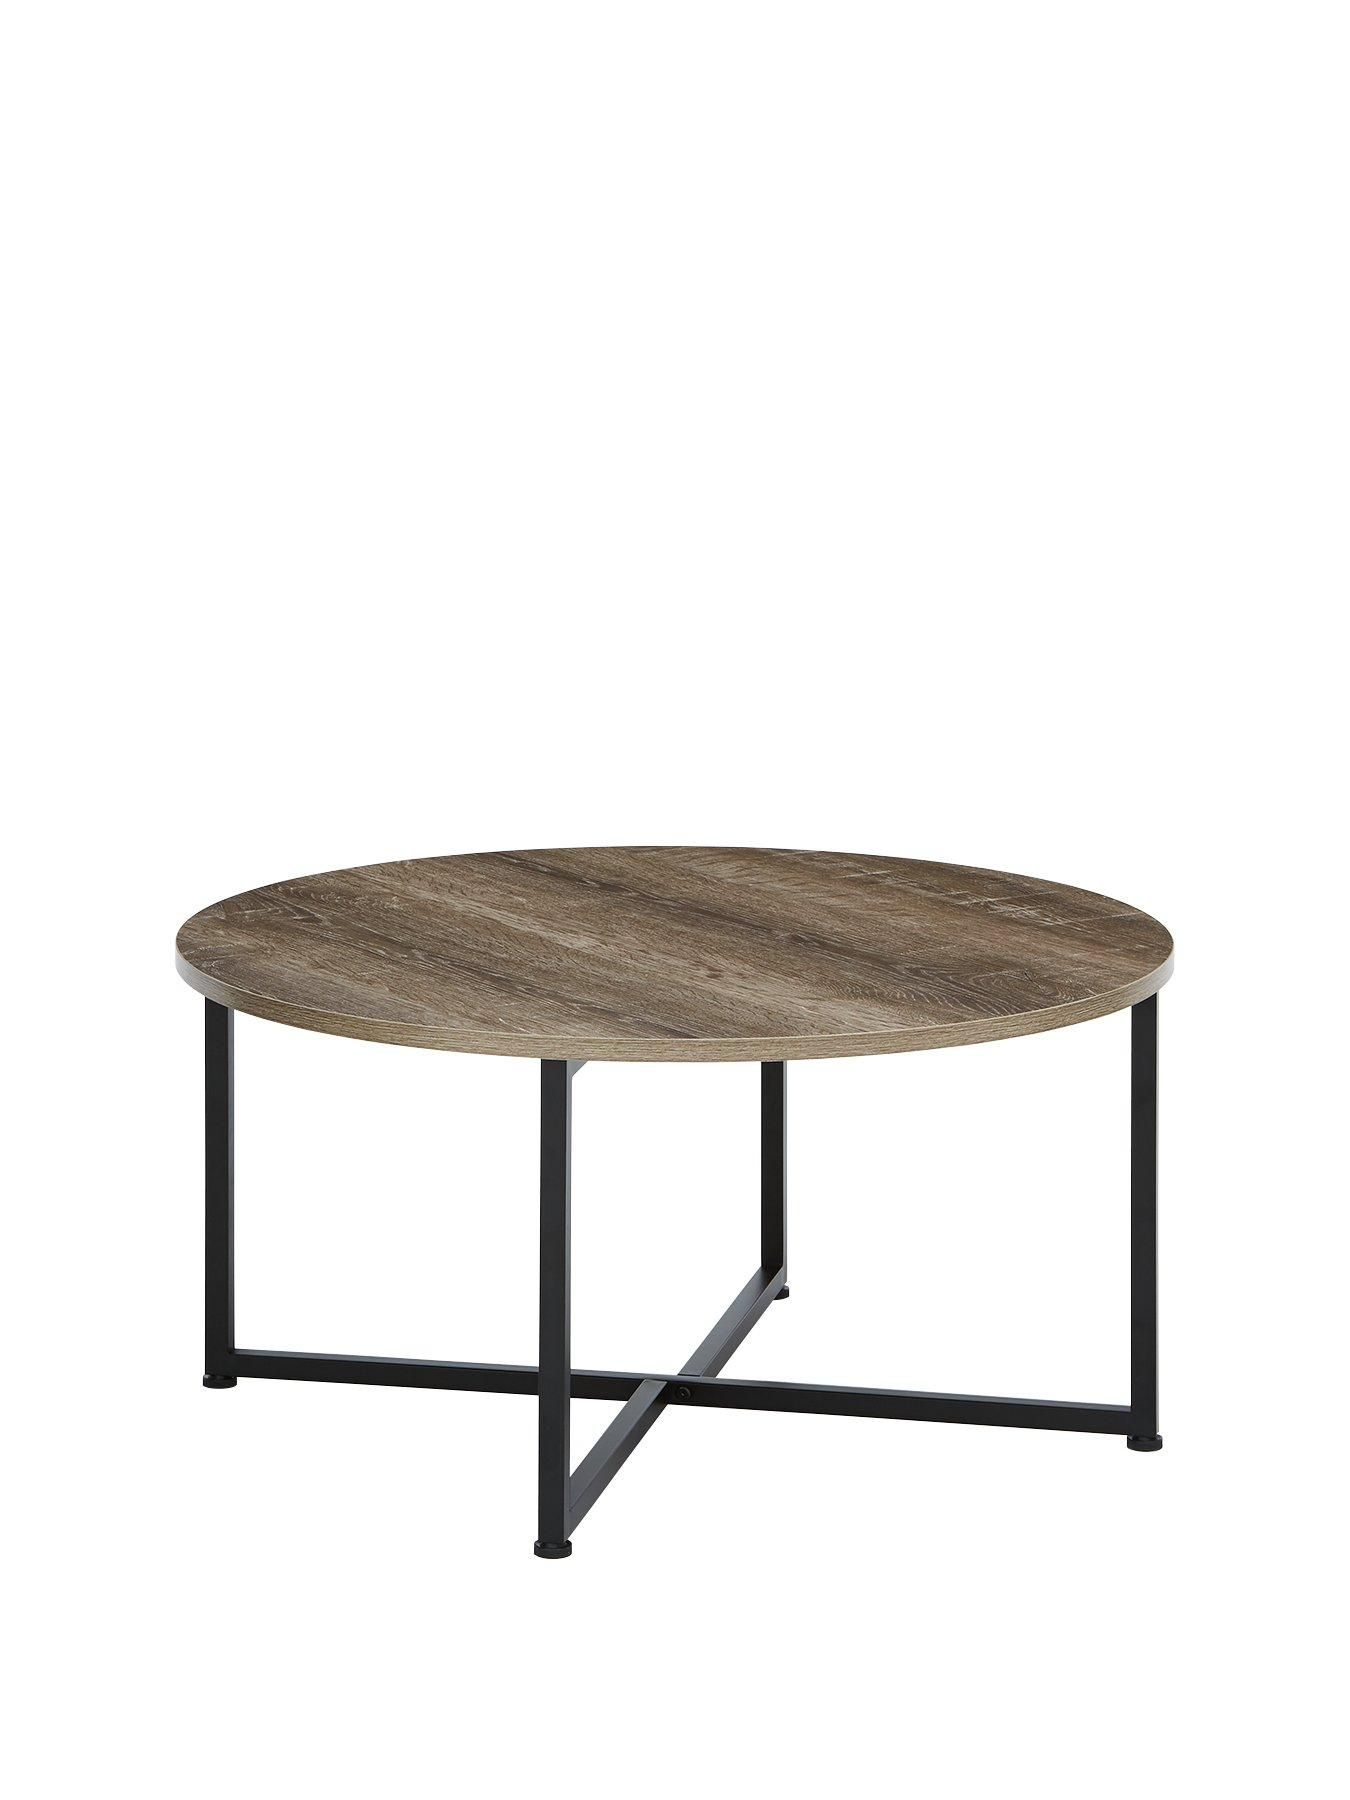 Telford Industrial Round Coffee Table Round Coffee Table Coffee Table Circular Coffee Table [ 1800 x 1350 Pixel ]